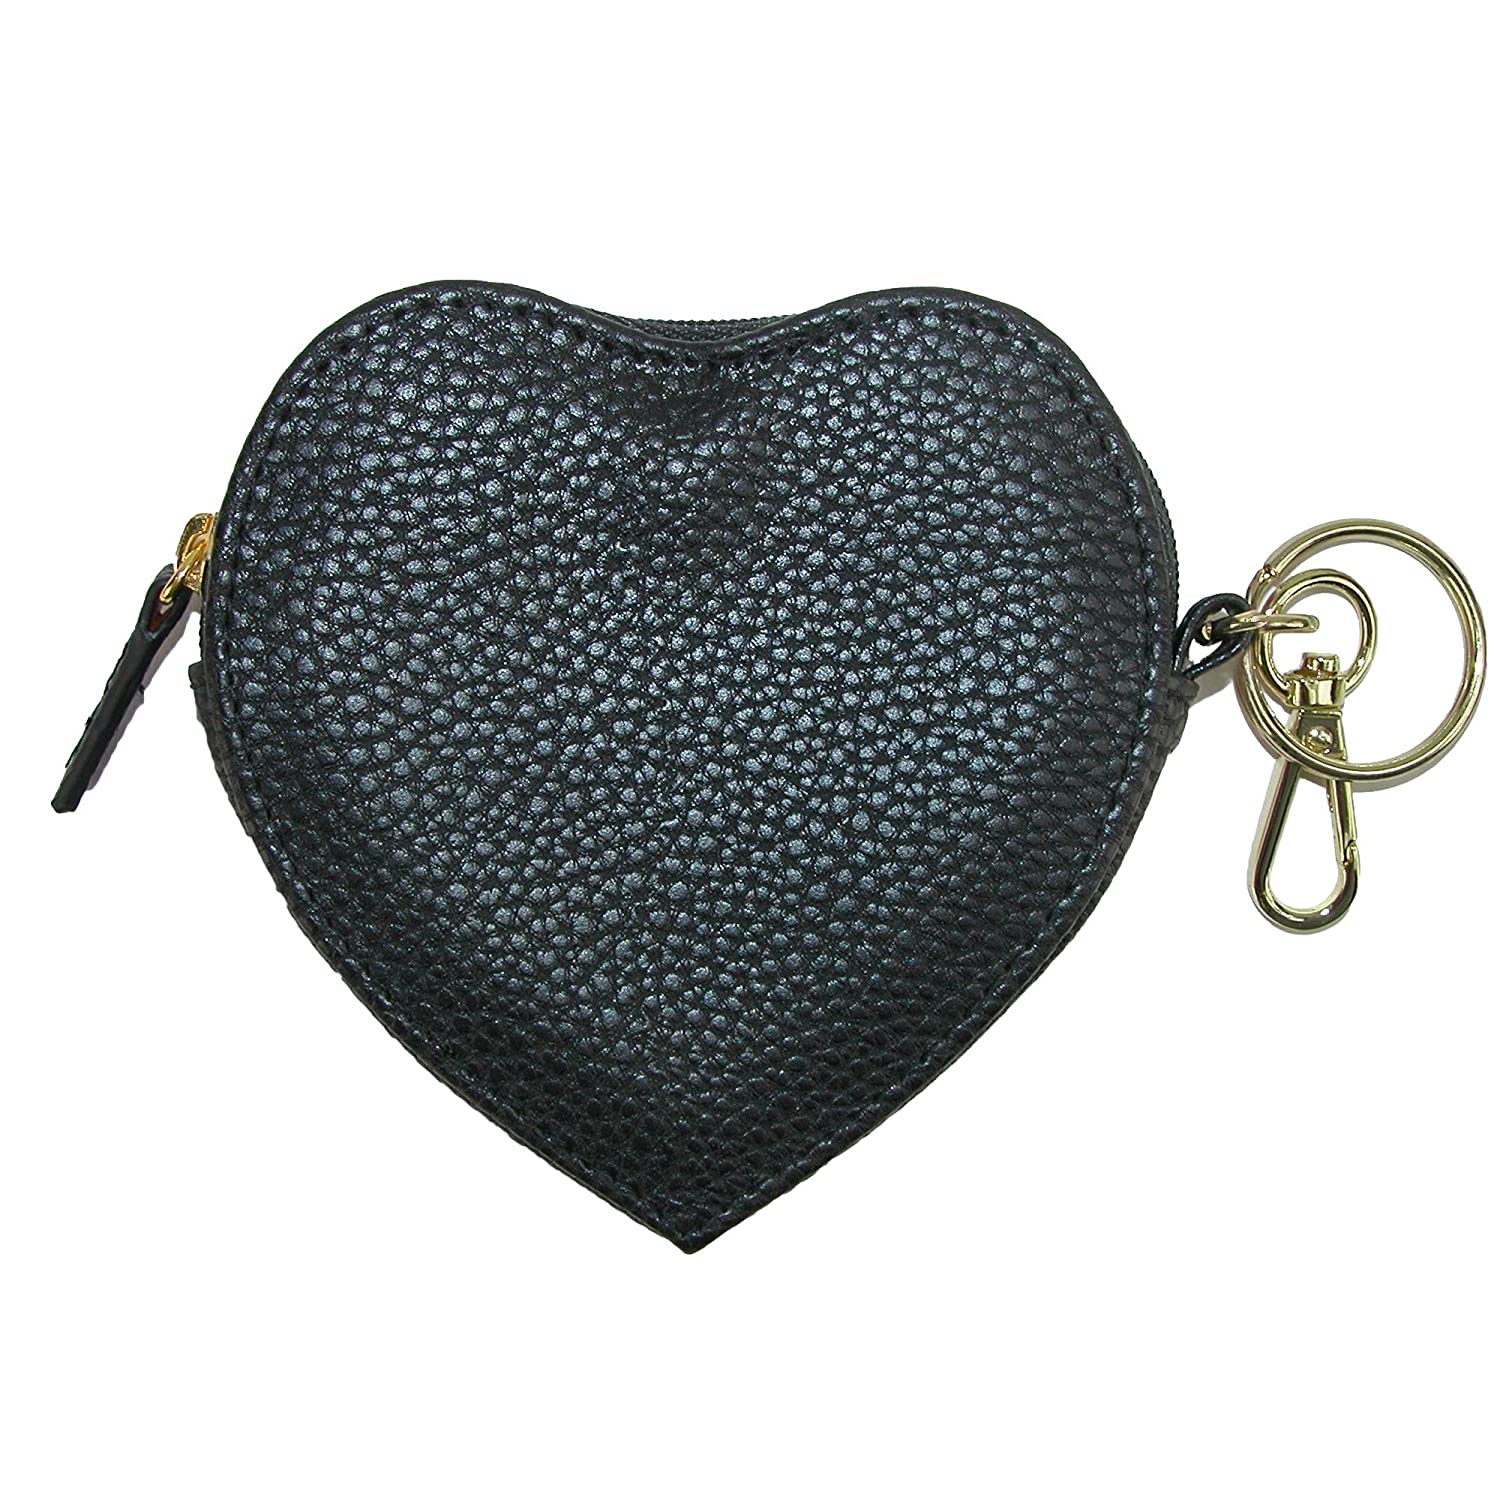 Buxton Heart Coin Purse